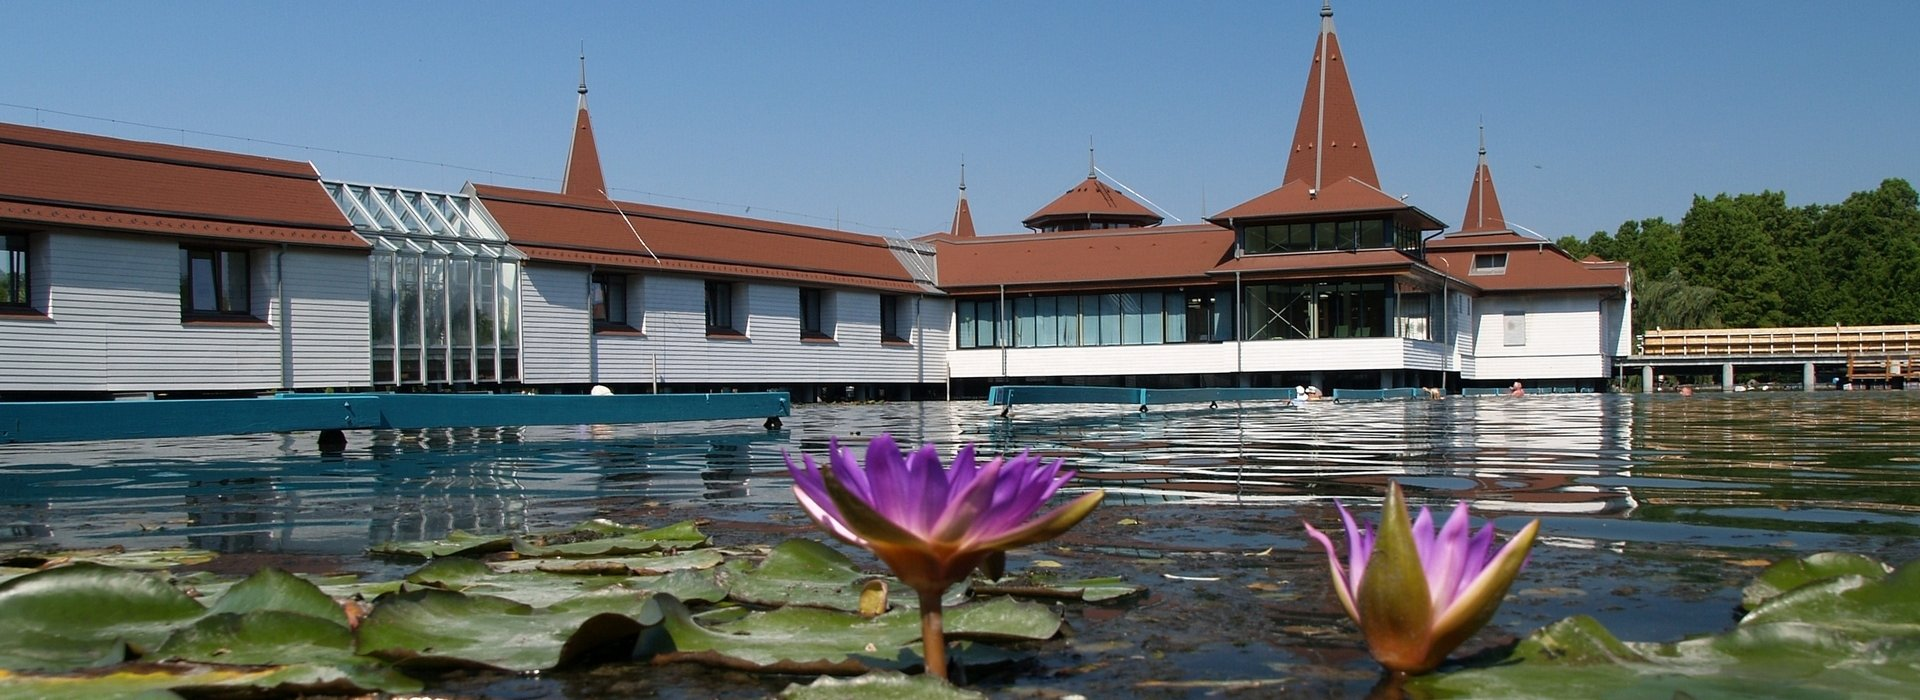 Nagyatd Thermal Bath and Medicinal Spa